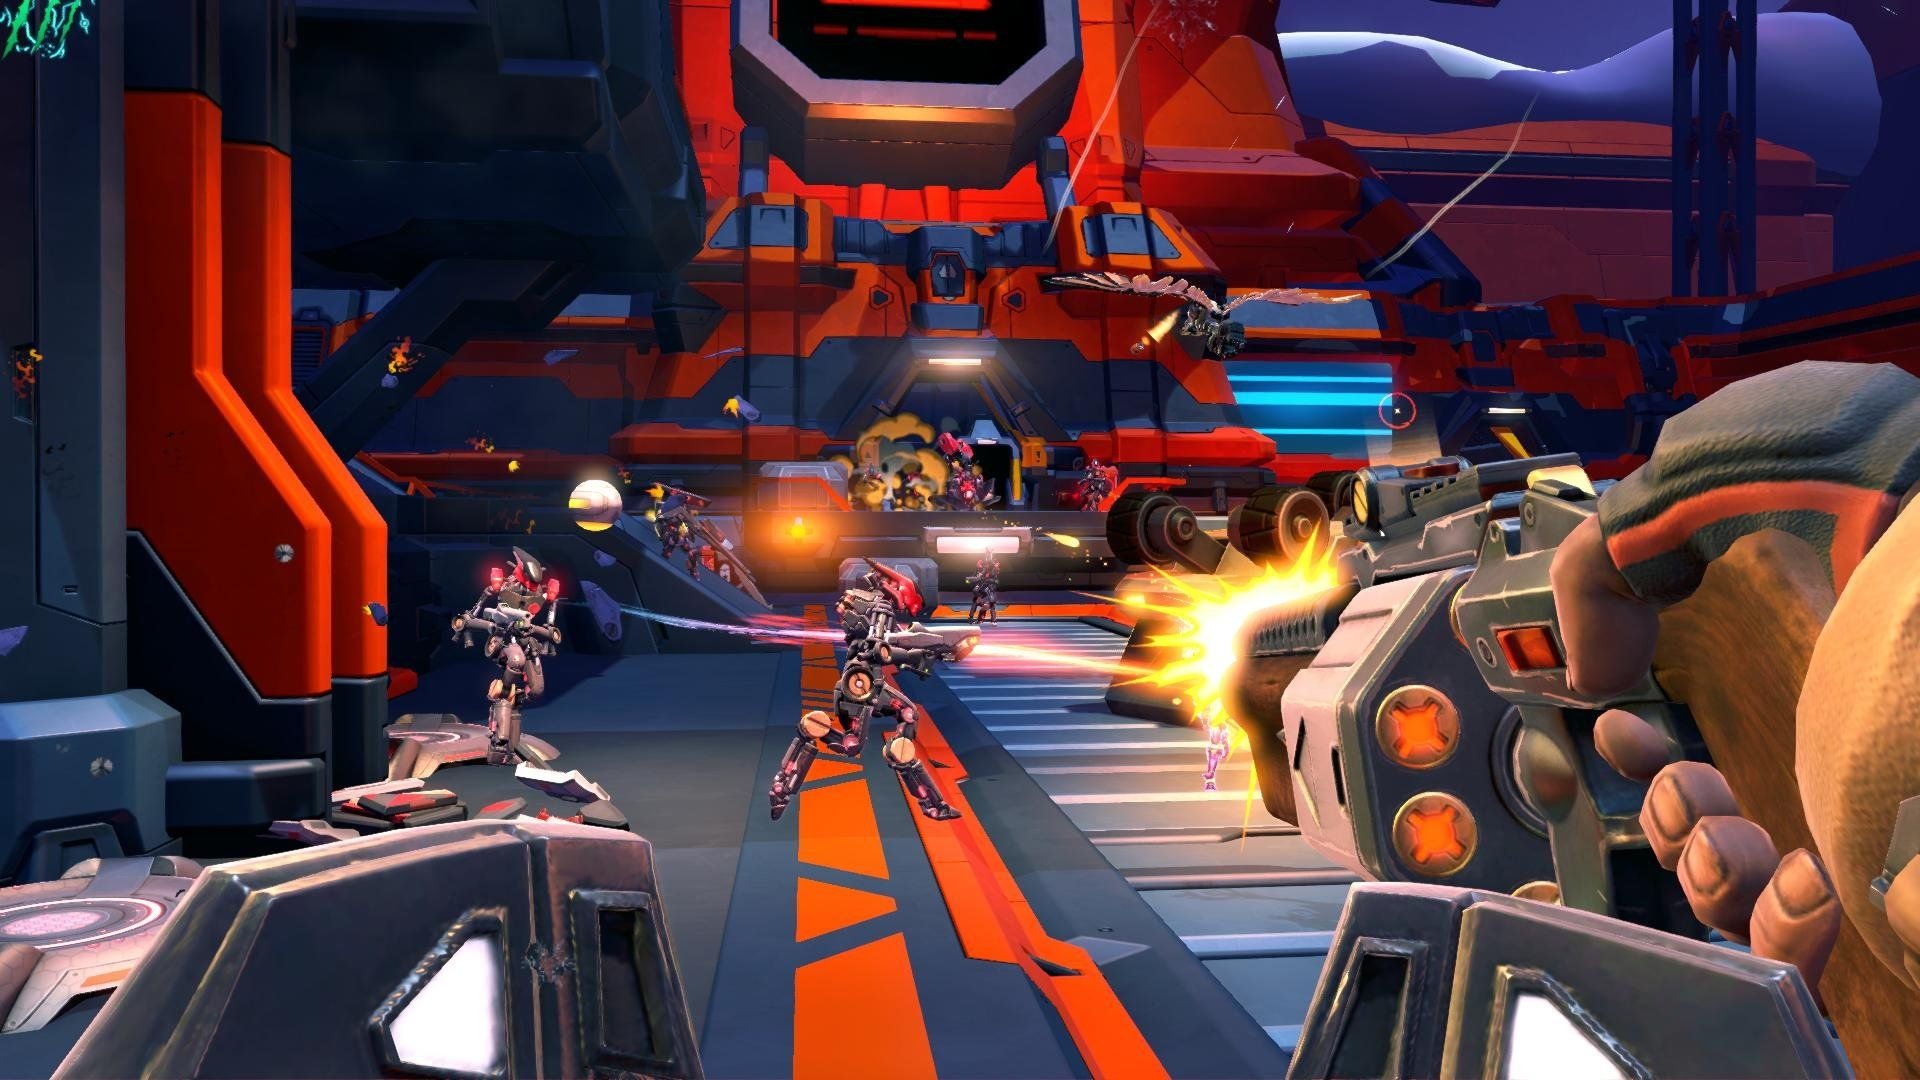 Xbox One Review Battleborn http//rplg.co/3c9ddbc0